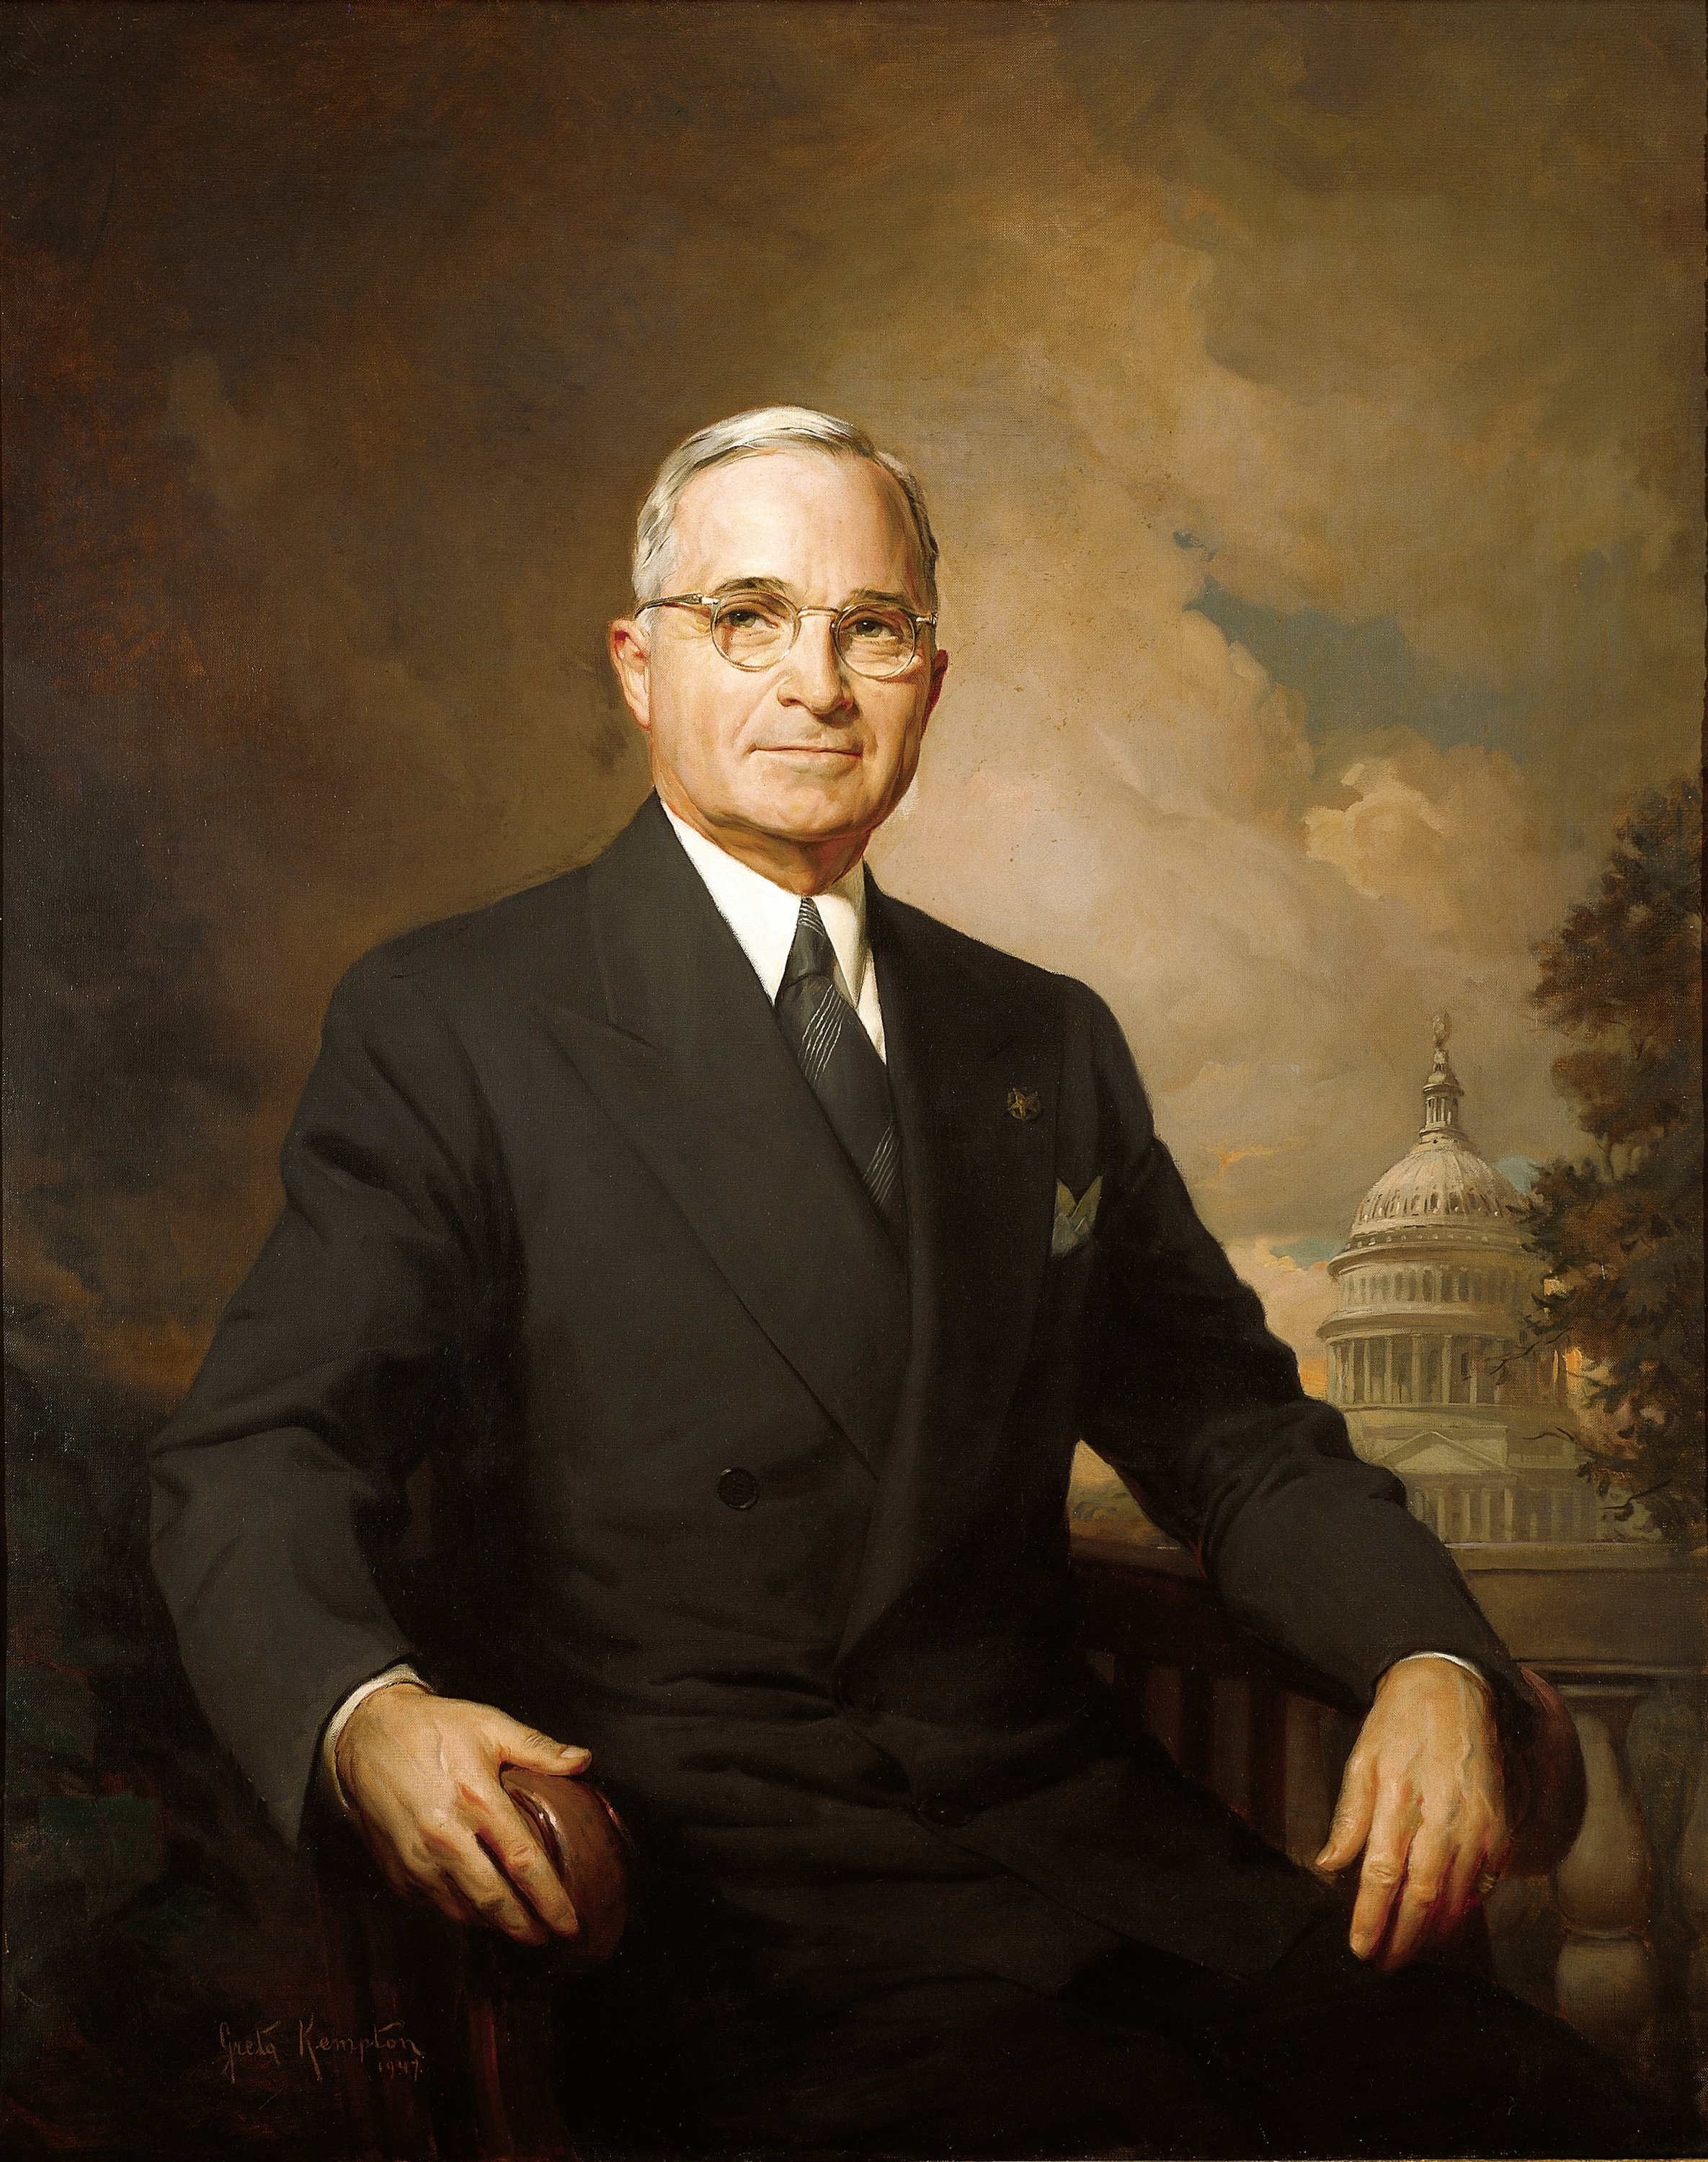 Official Presidential Portrait of Harry S. Truman painted by Greta Kempton. Notice the Capitol Building in the background. Truman, who was a two-term senator from Missouri and as vice-president presided over the Senate, wanted to emphasize his legislative career rather than his executive and the constitutional emphasis of the former over the latter.